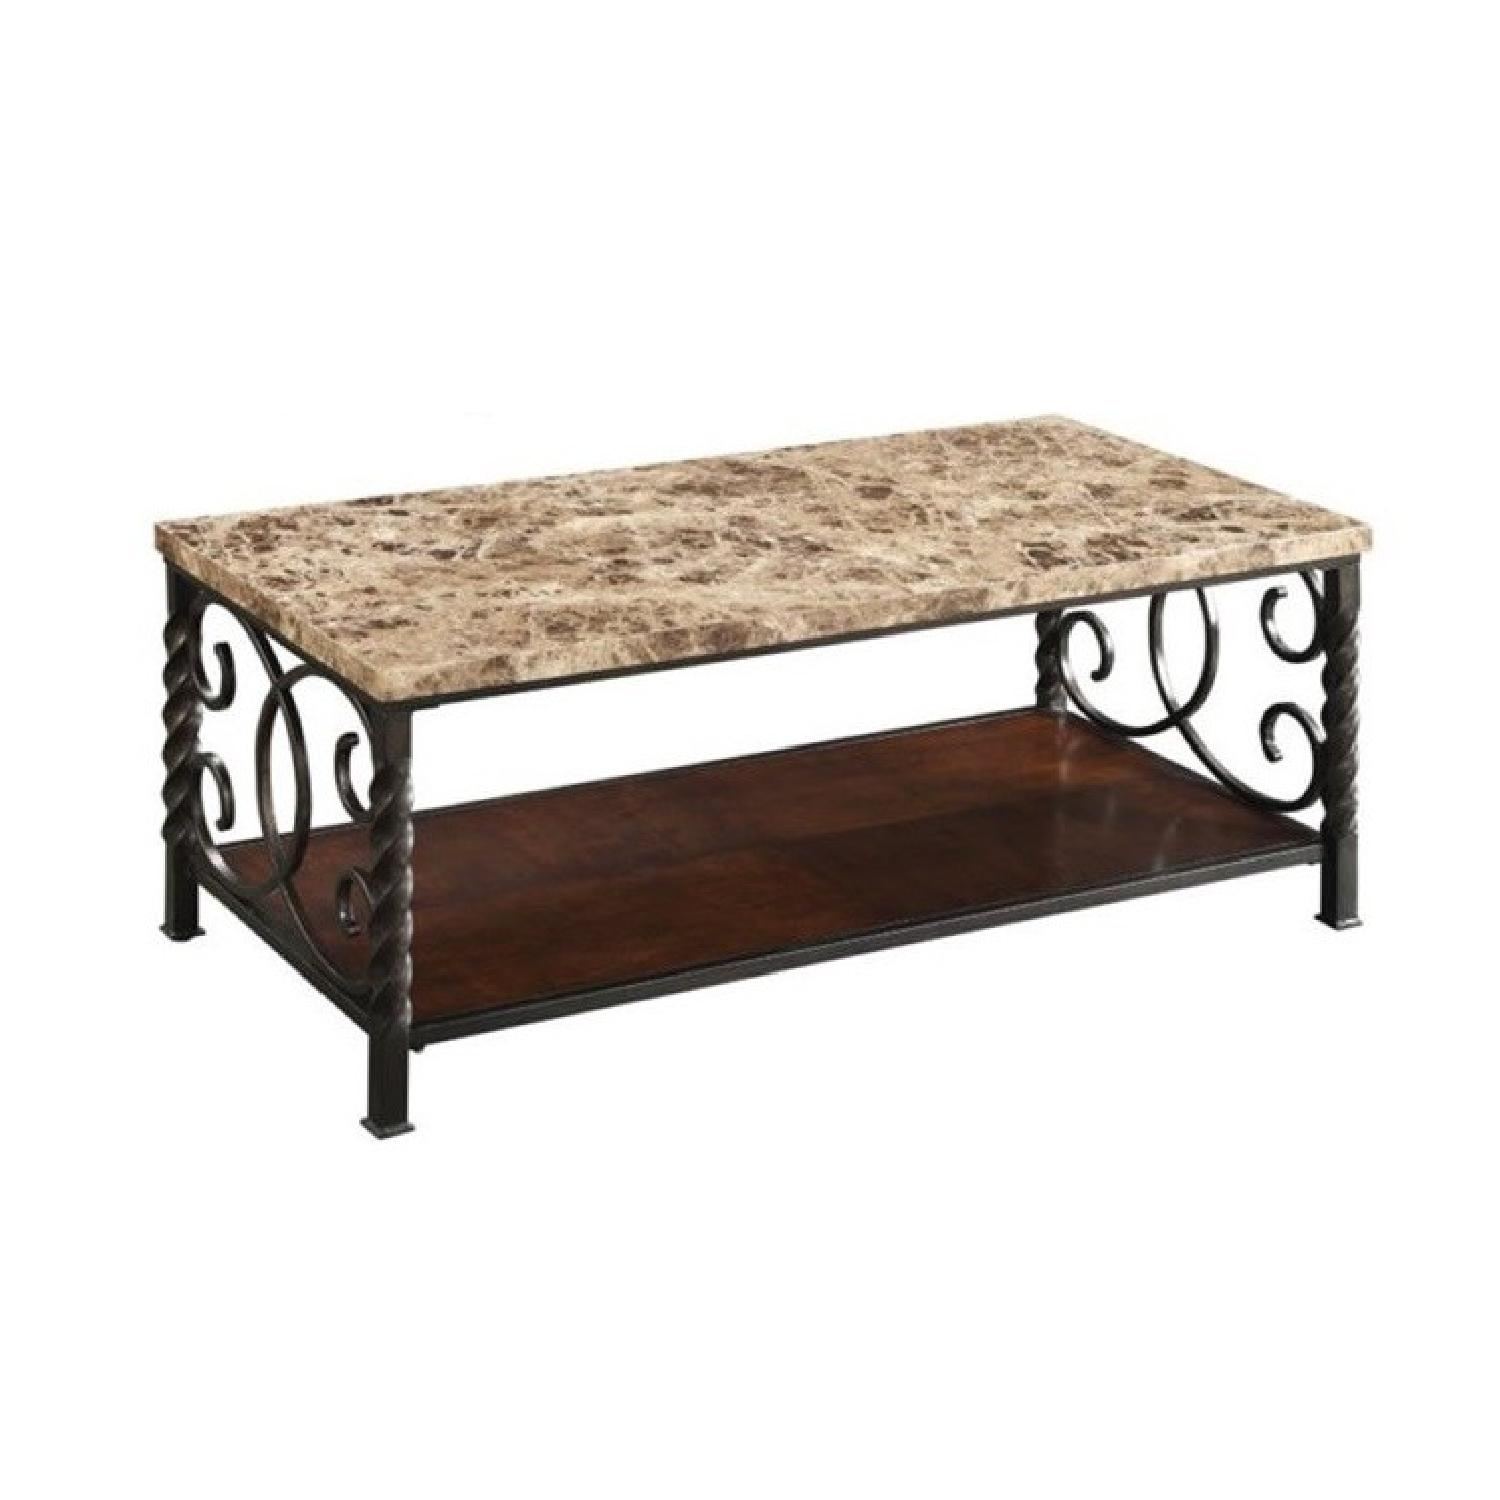 Faux Marble Table Top & Metal Legs Coffee + 2 End Tables